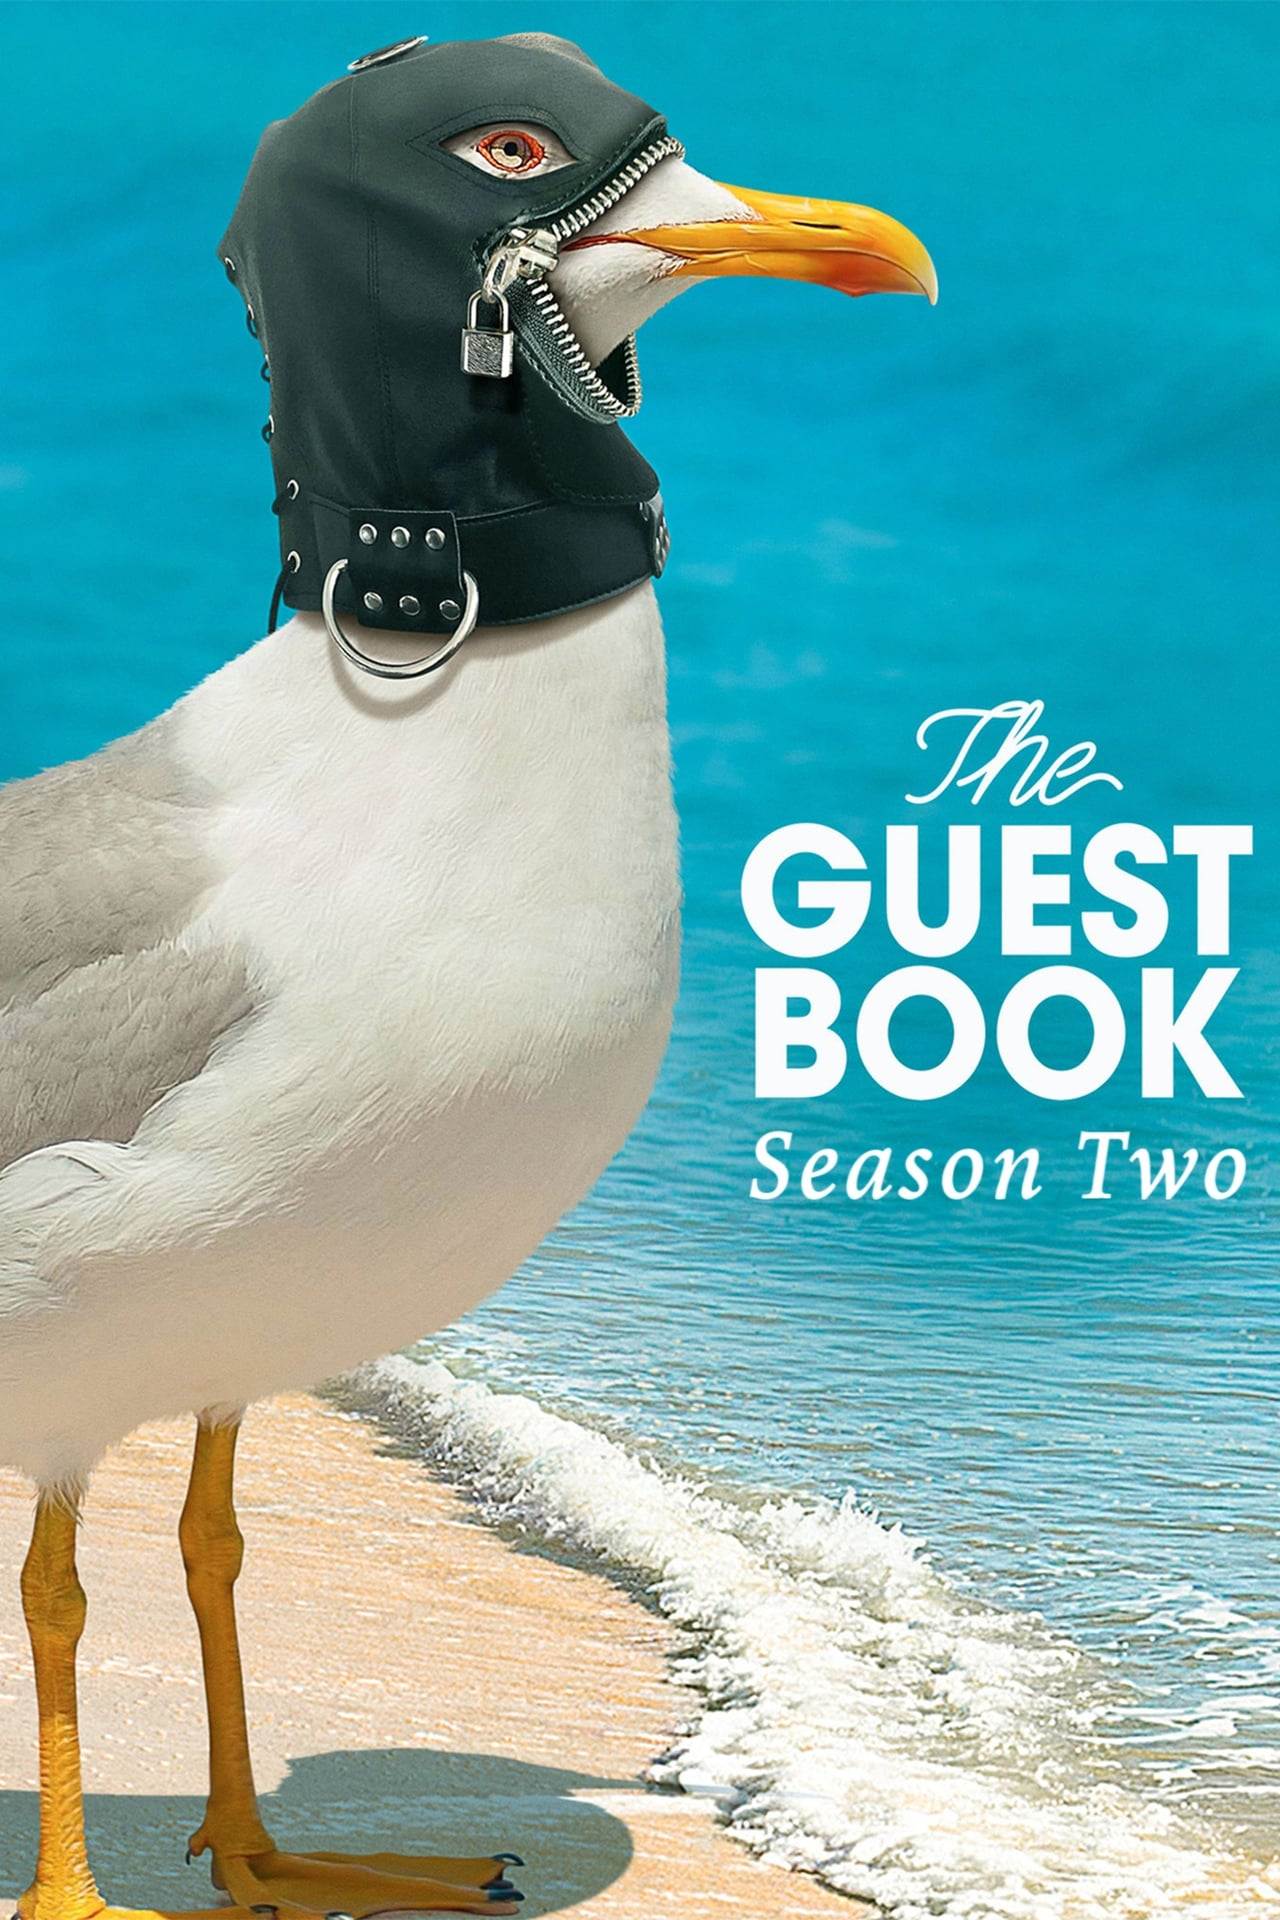 The Guest Book Season 2